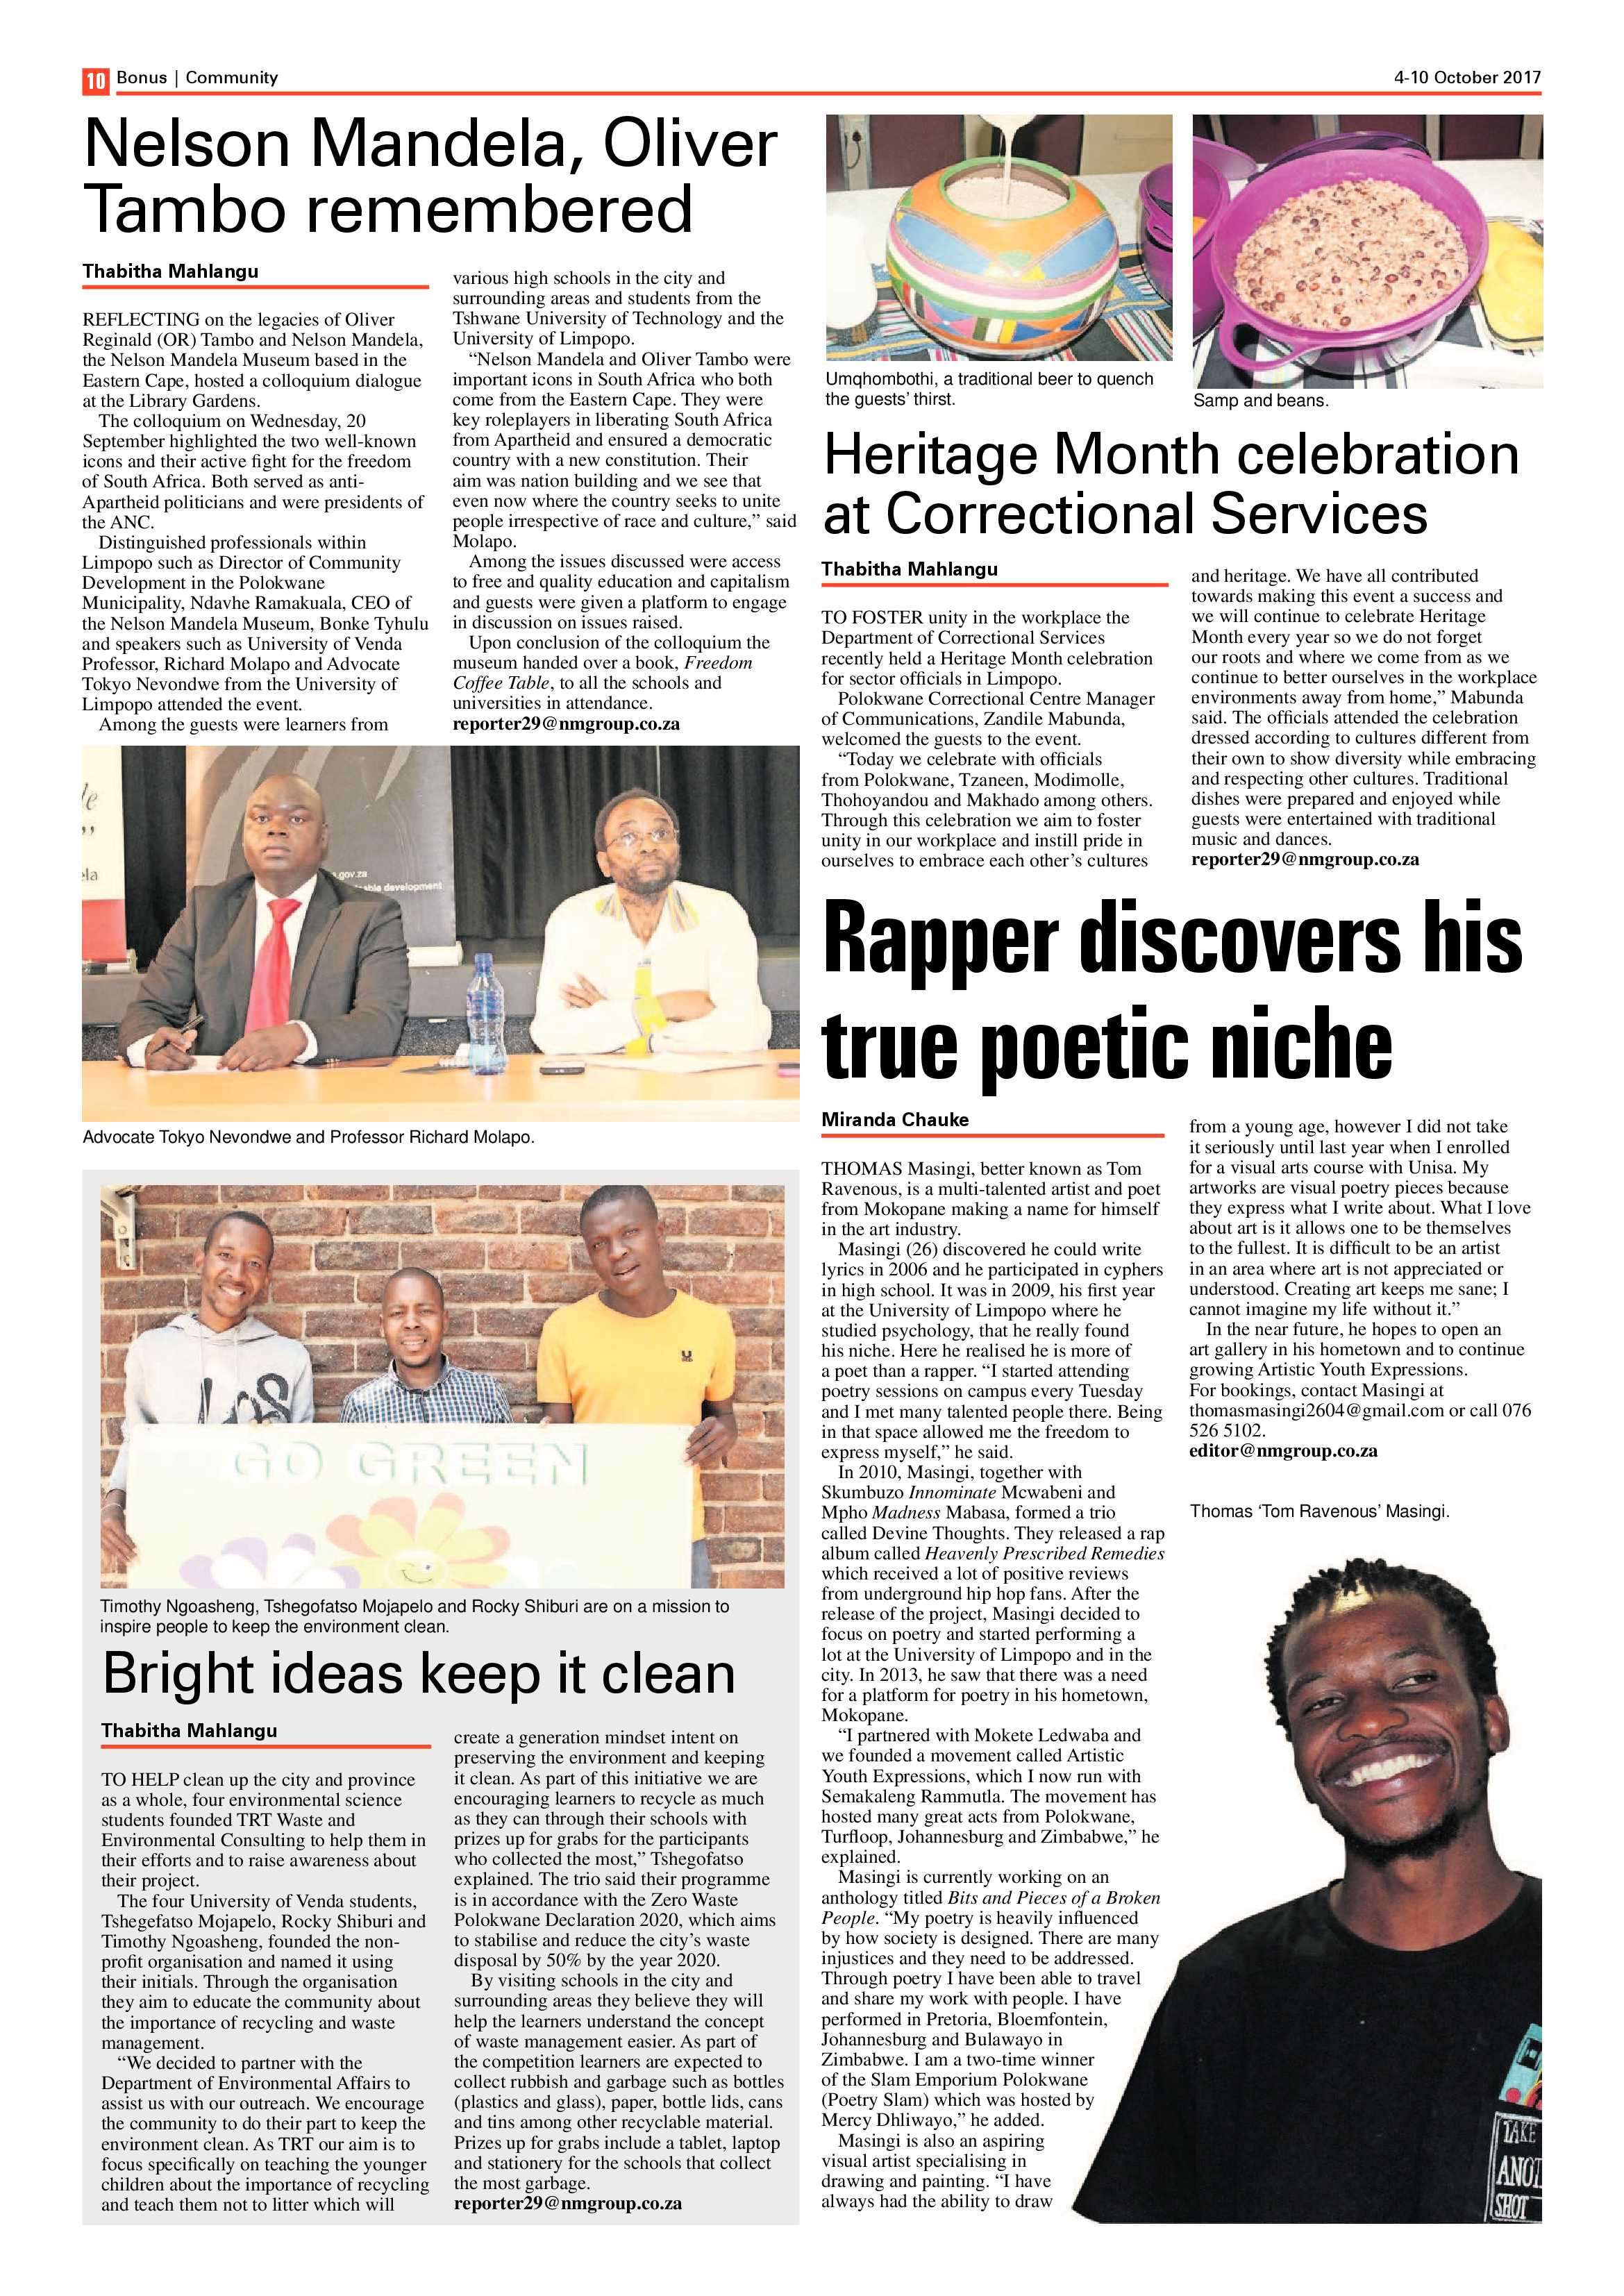 review-bonus-4-october-2017-epapers-page-10